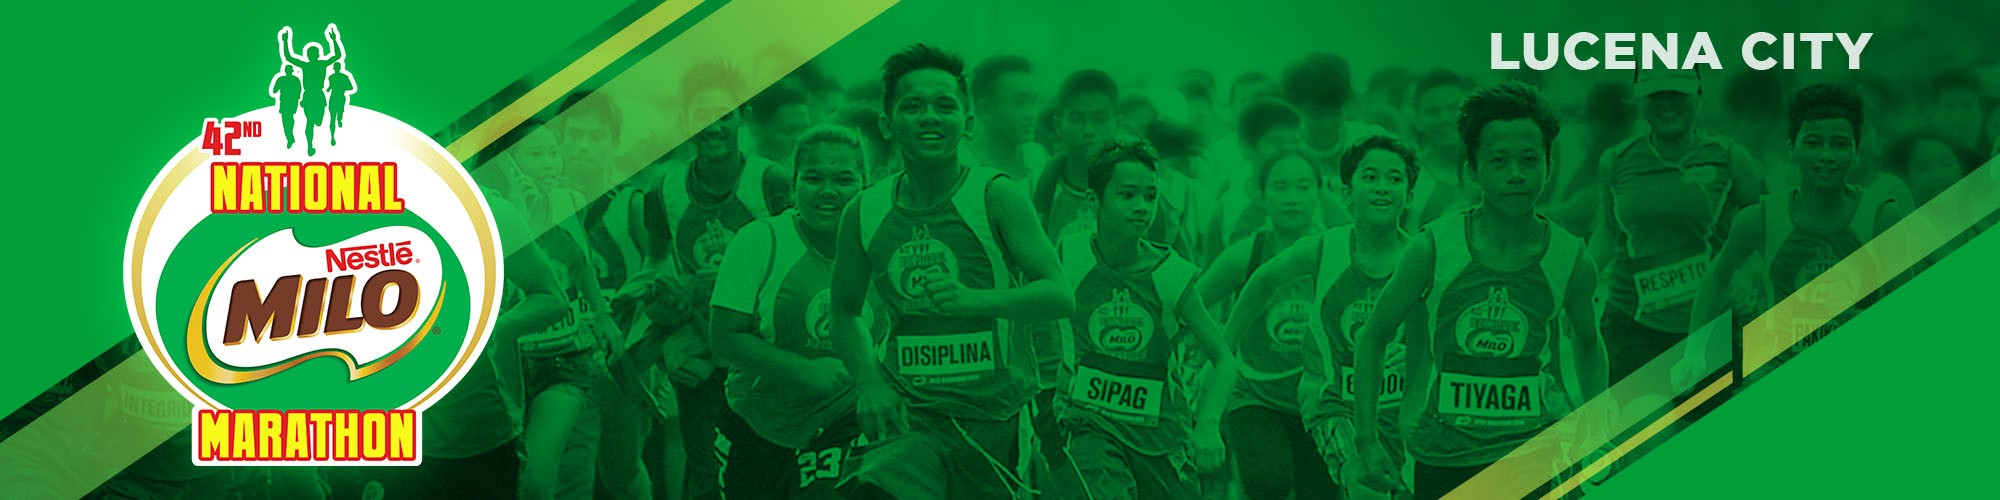 42nd National MILO Marathon - Lucena Leg